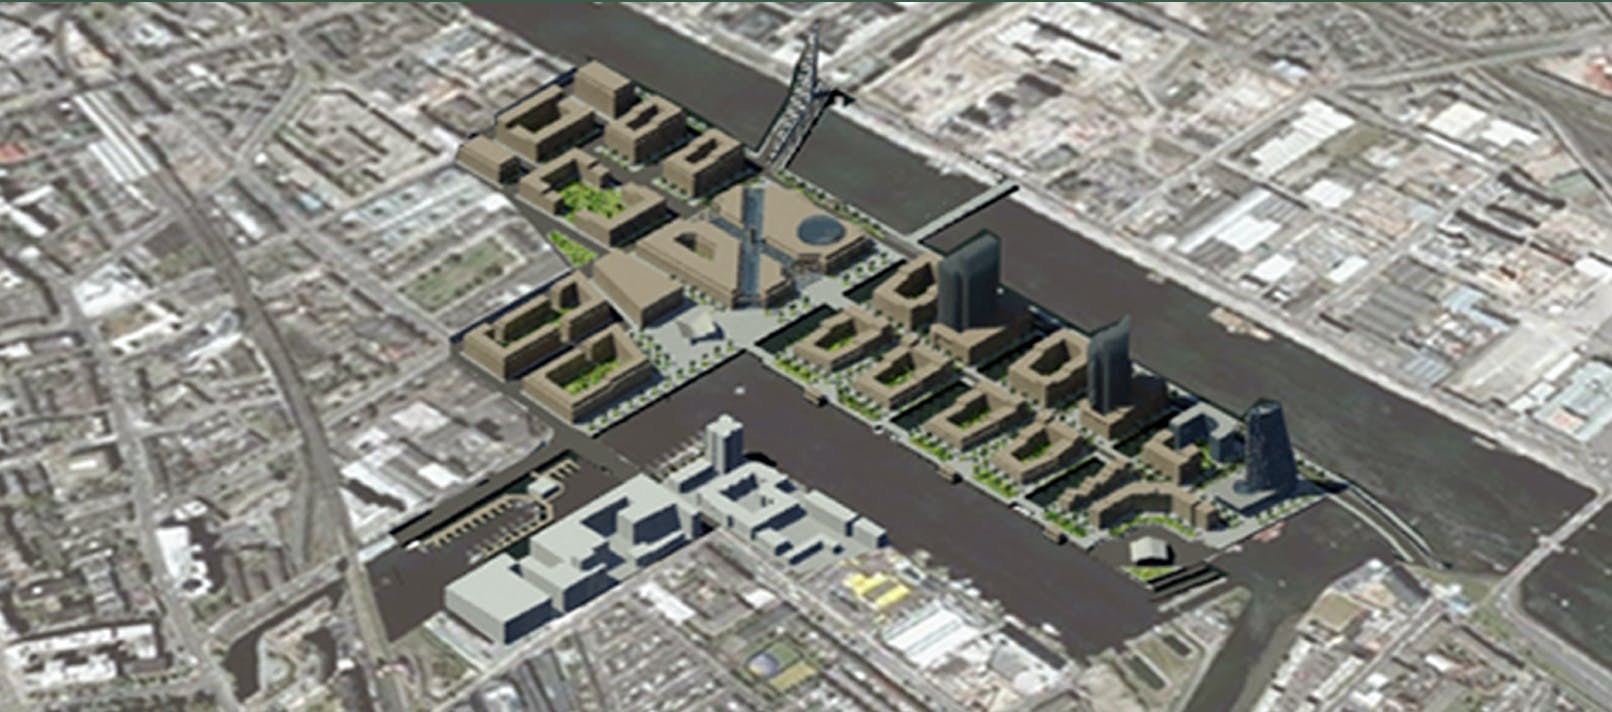 m arch in projecting and urban planning